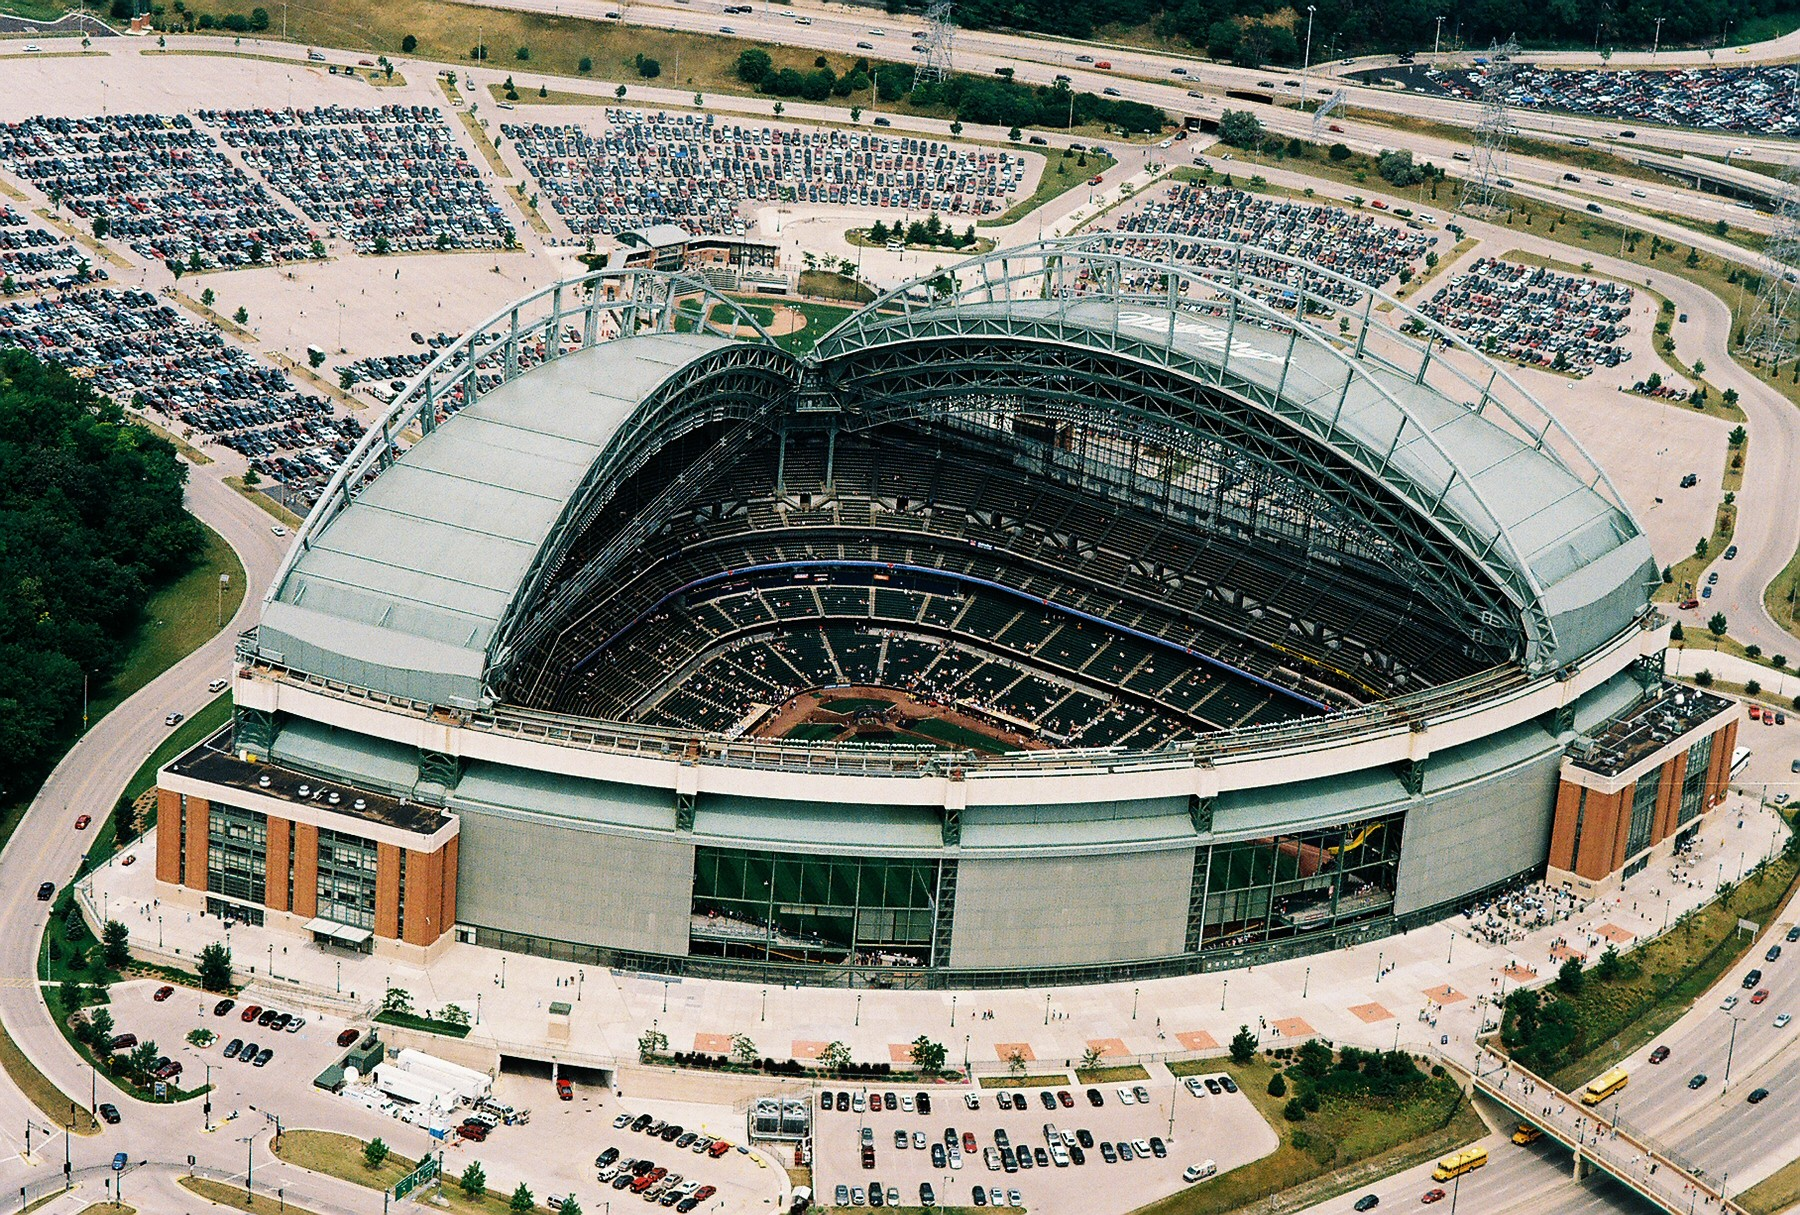 Miller Park Retractable Roof